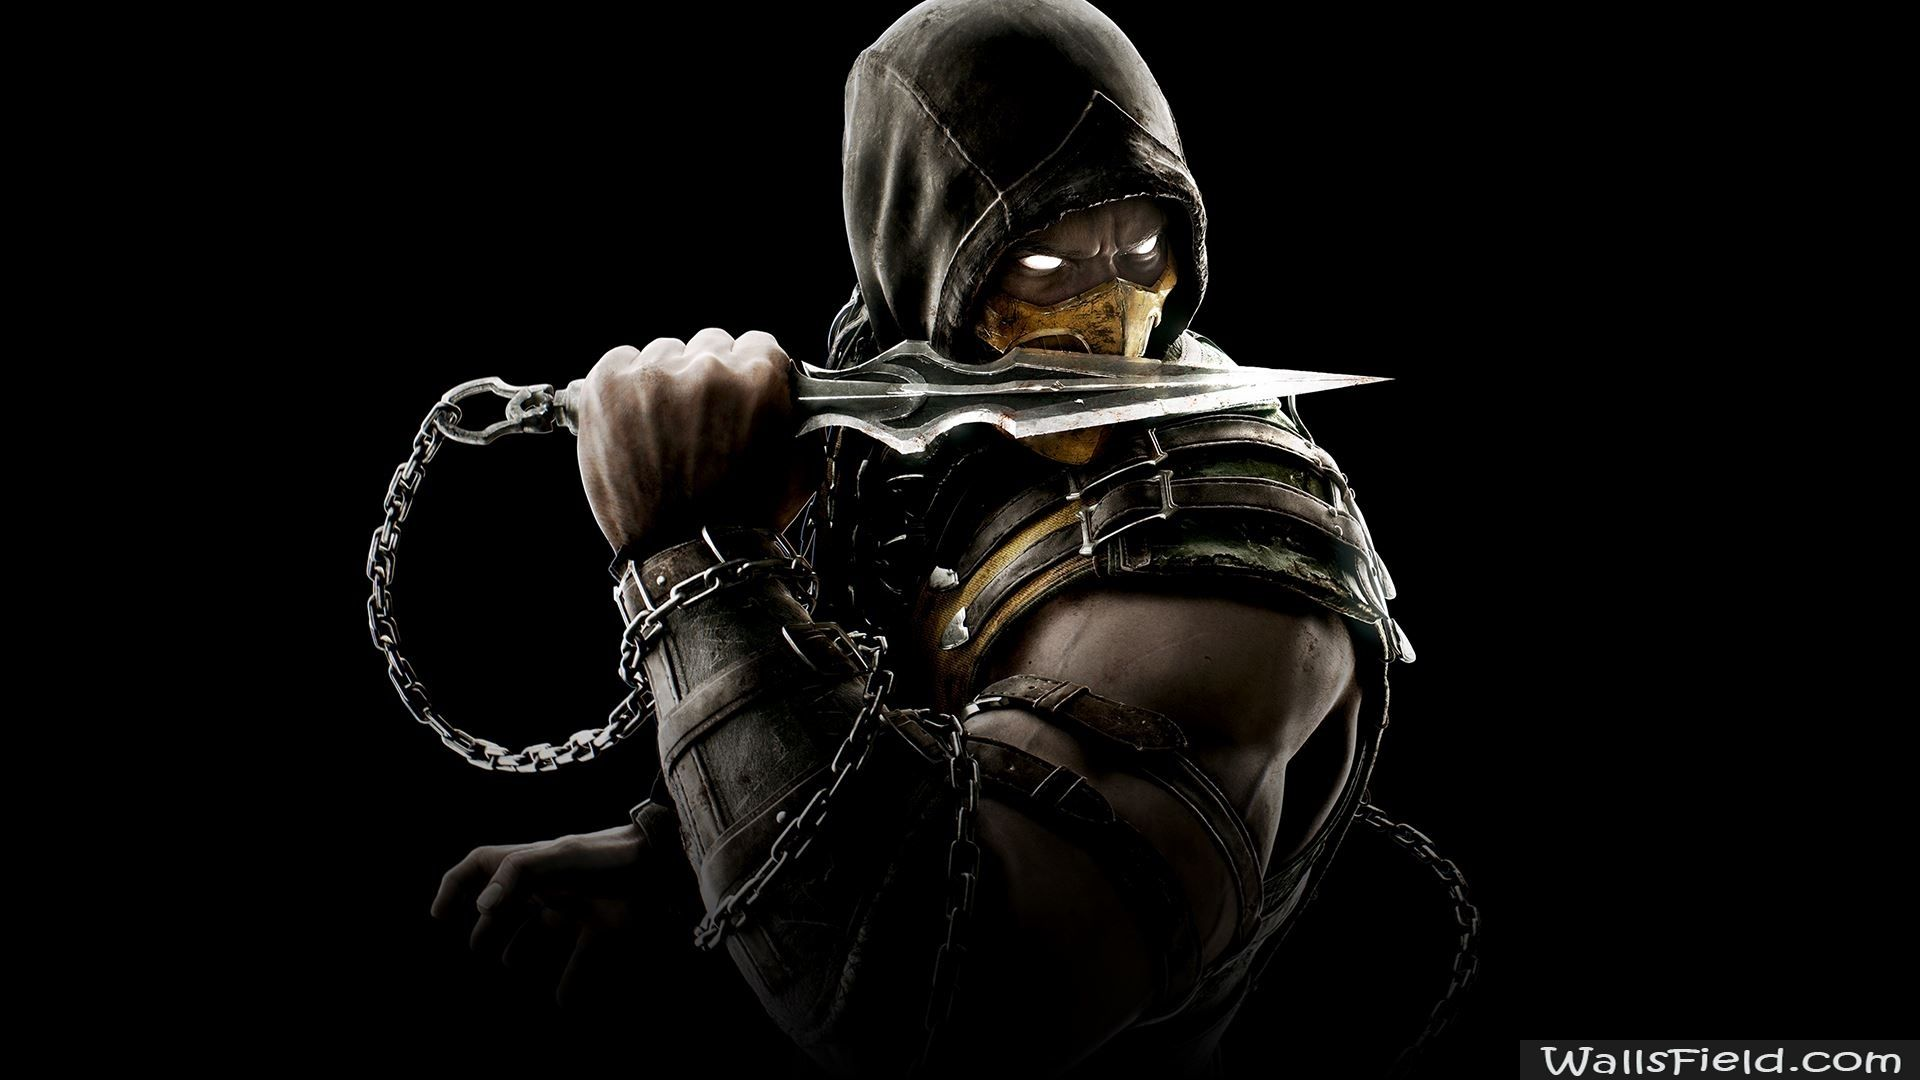 Mortal Kombat X Scorpion Wallsfield Com Free Hd Wallpapers Scorpion Mortal Kombat Mortal Kombat X Wallpapers Mortal Kombat X Scorpion